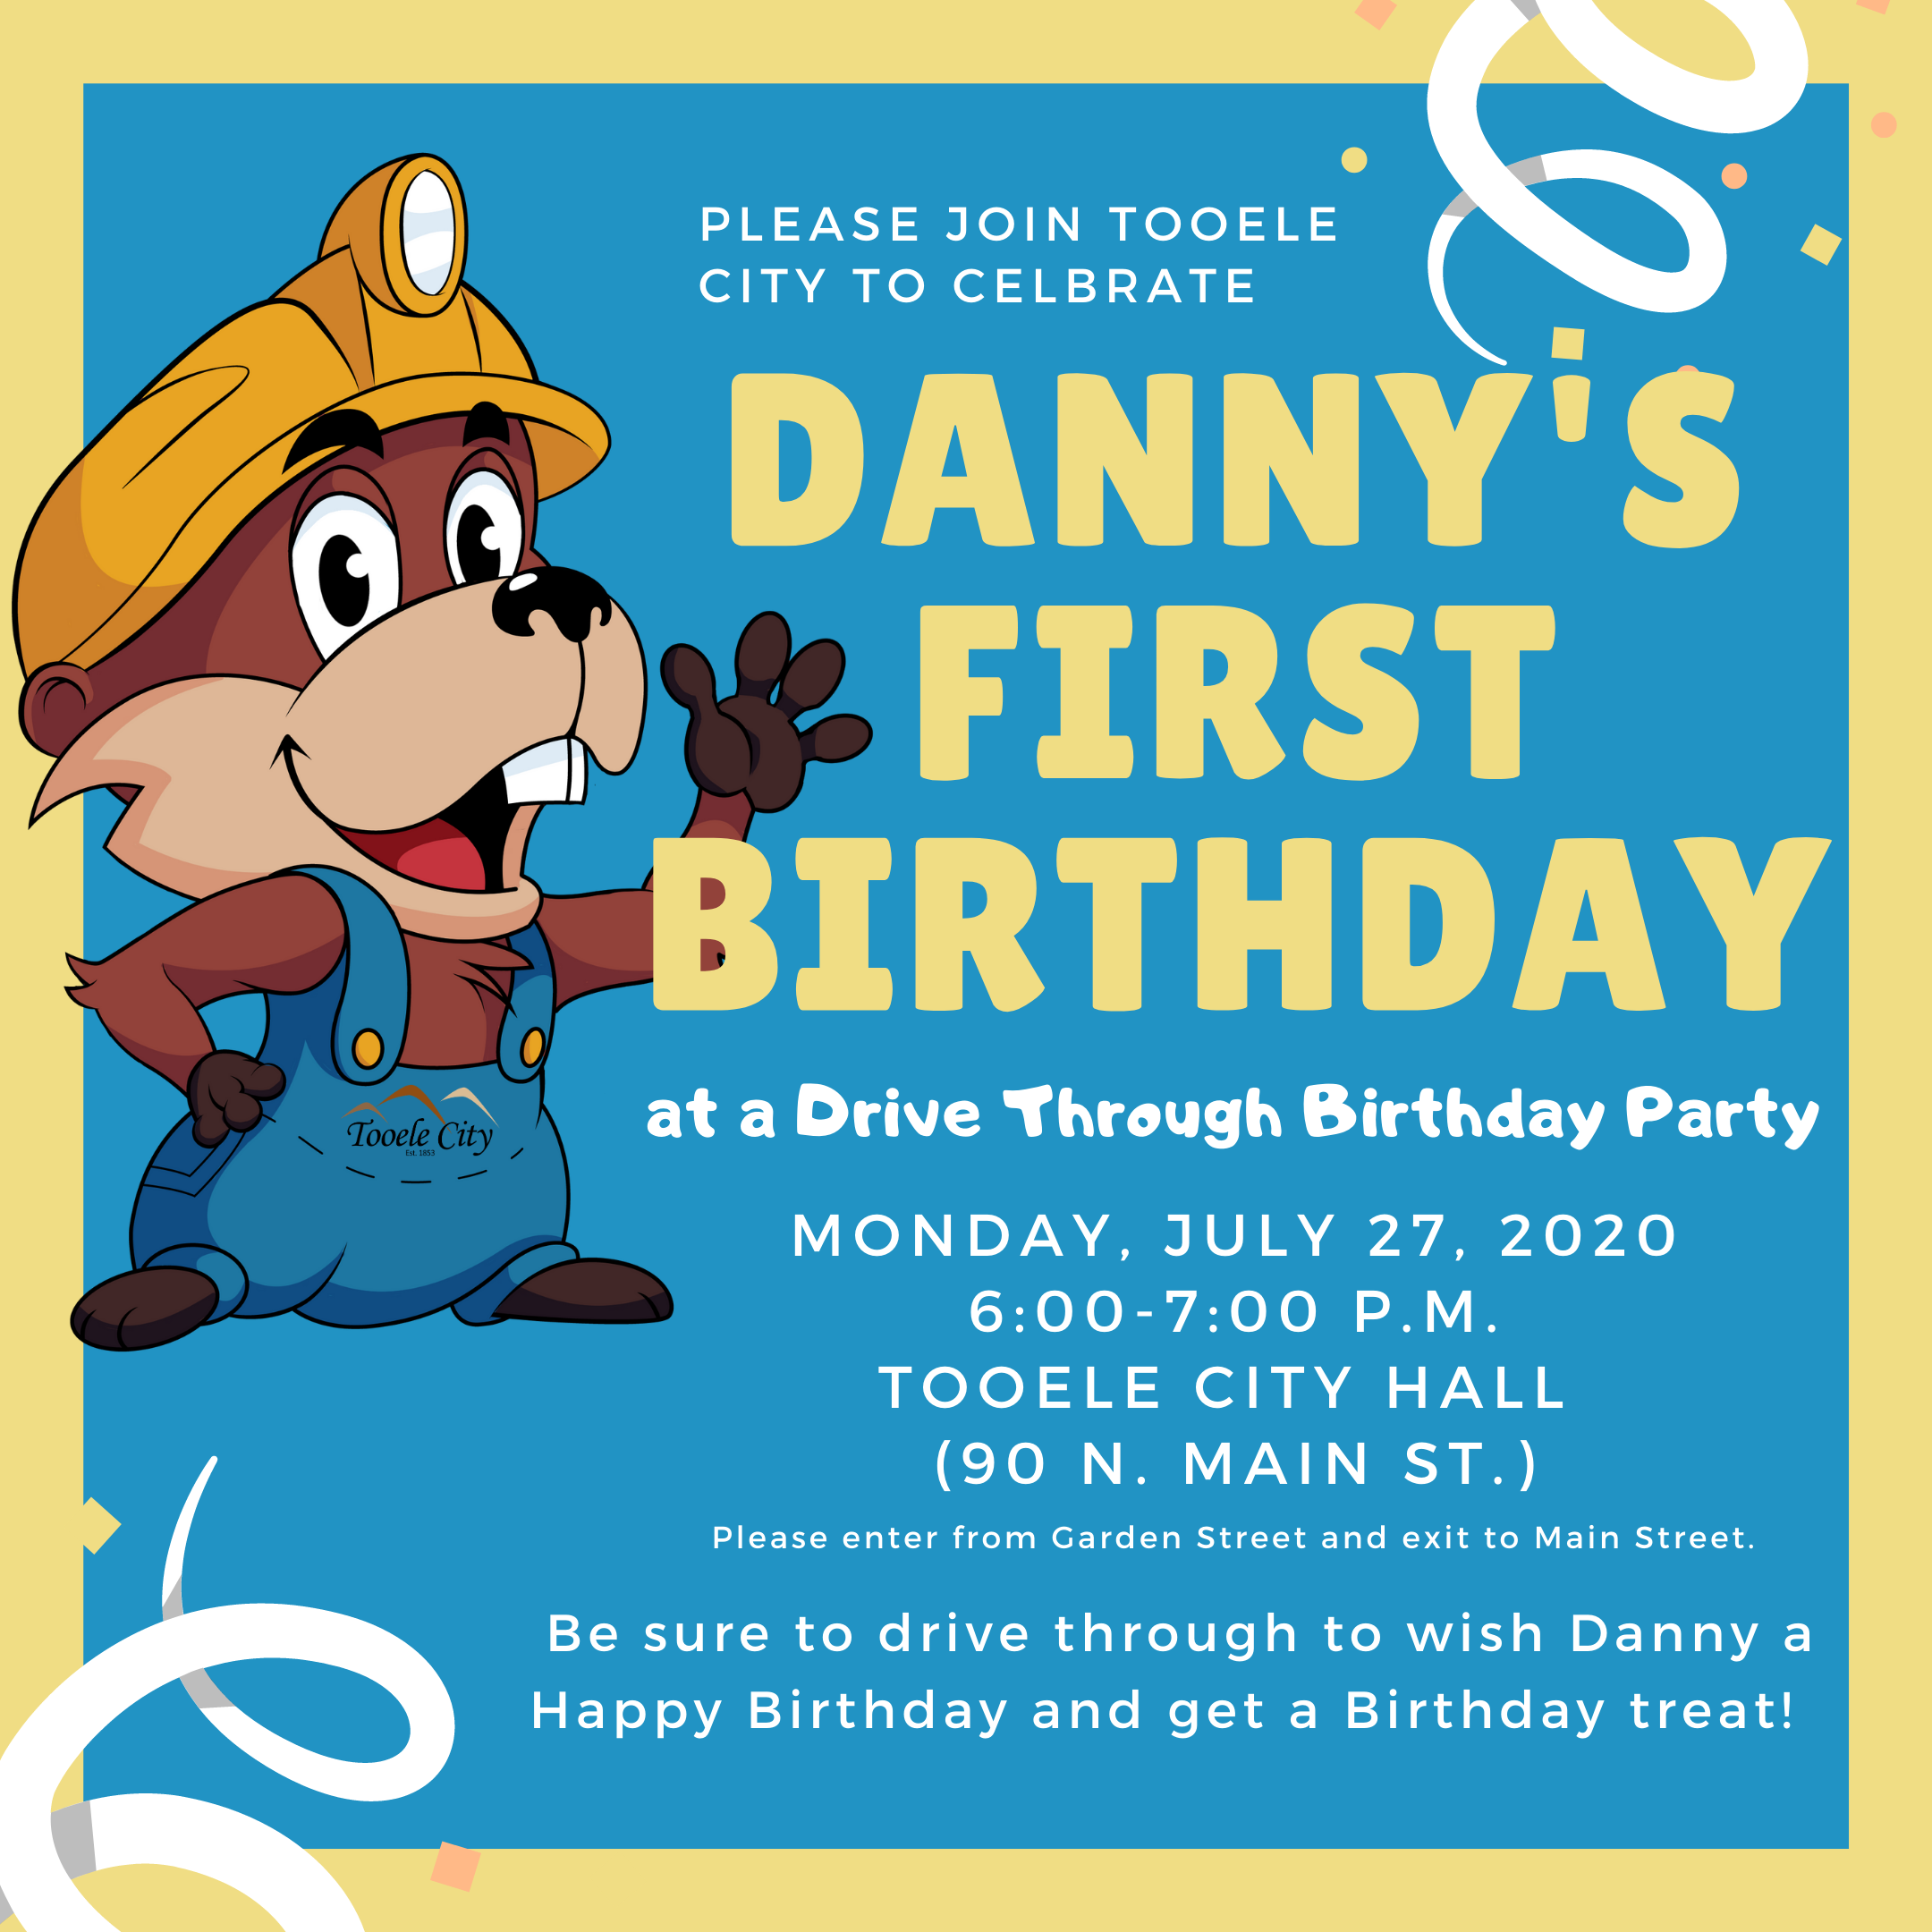 Danny's First Birthday @ Tooele City Hall